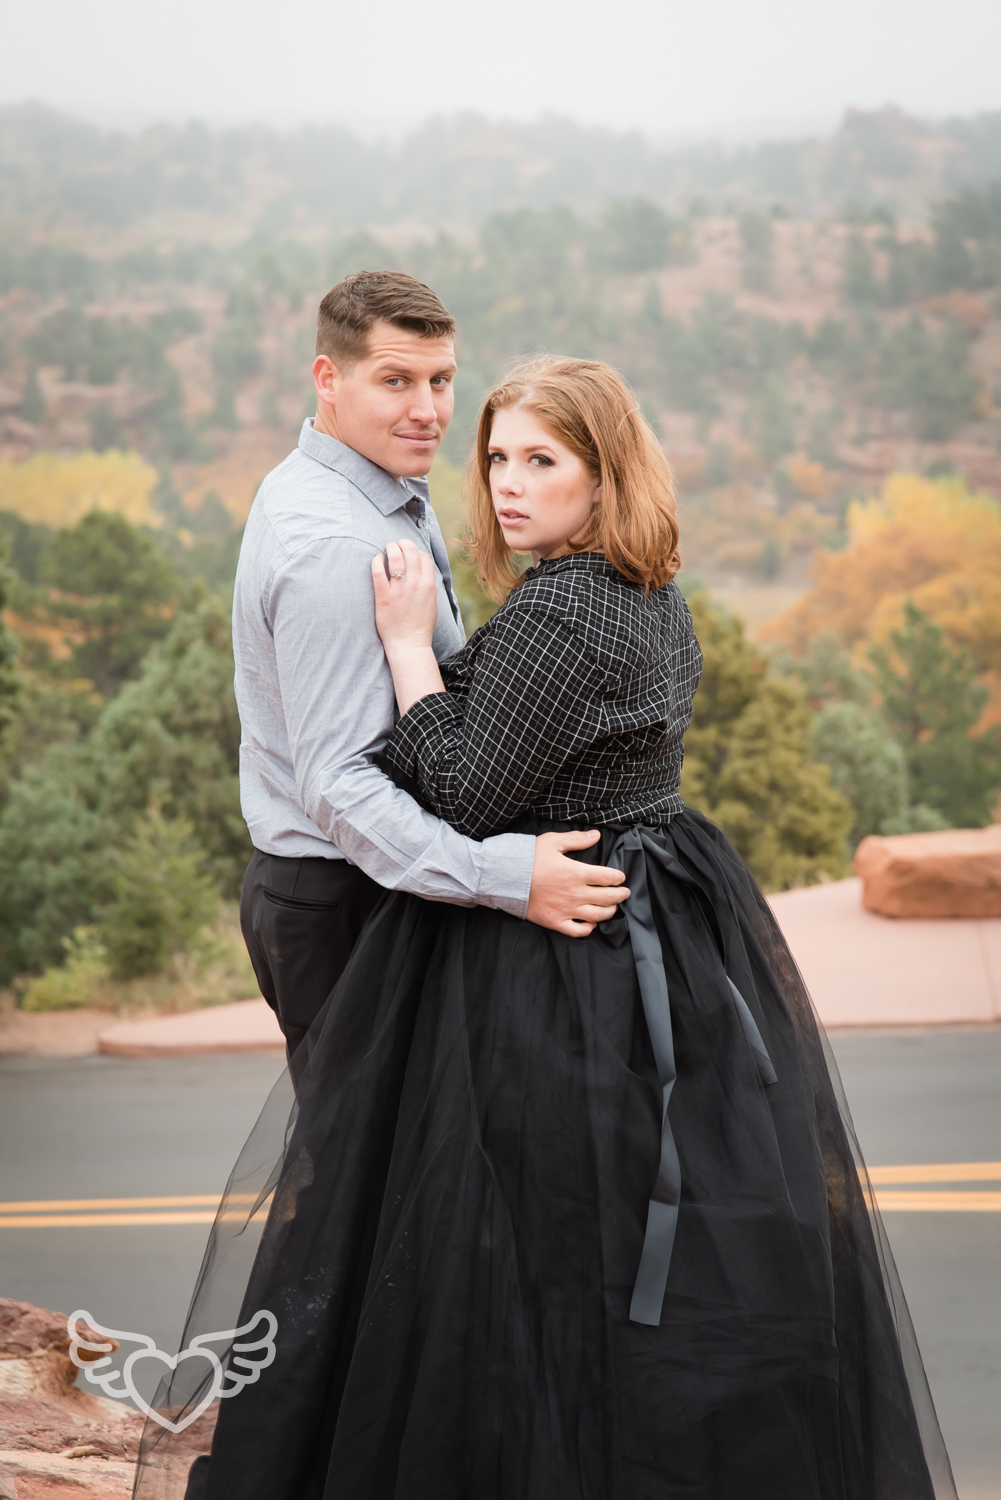 Couples_Photography_Gardenofthegods-73.jpg